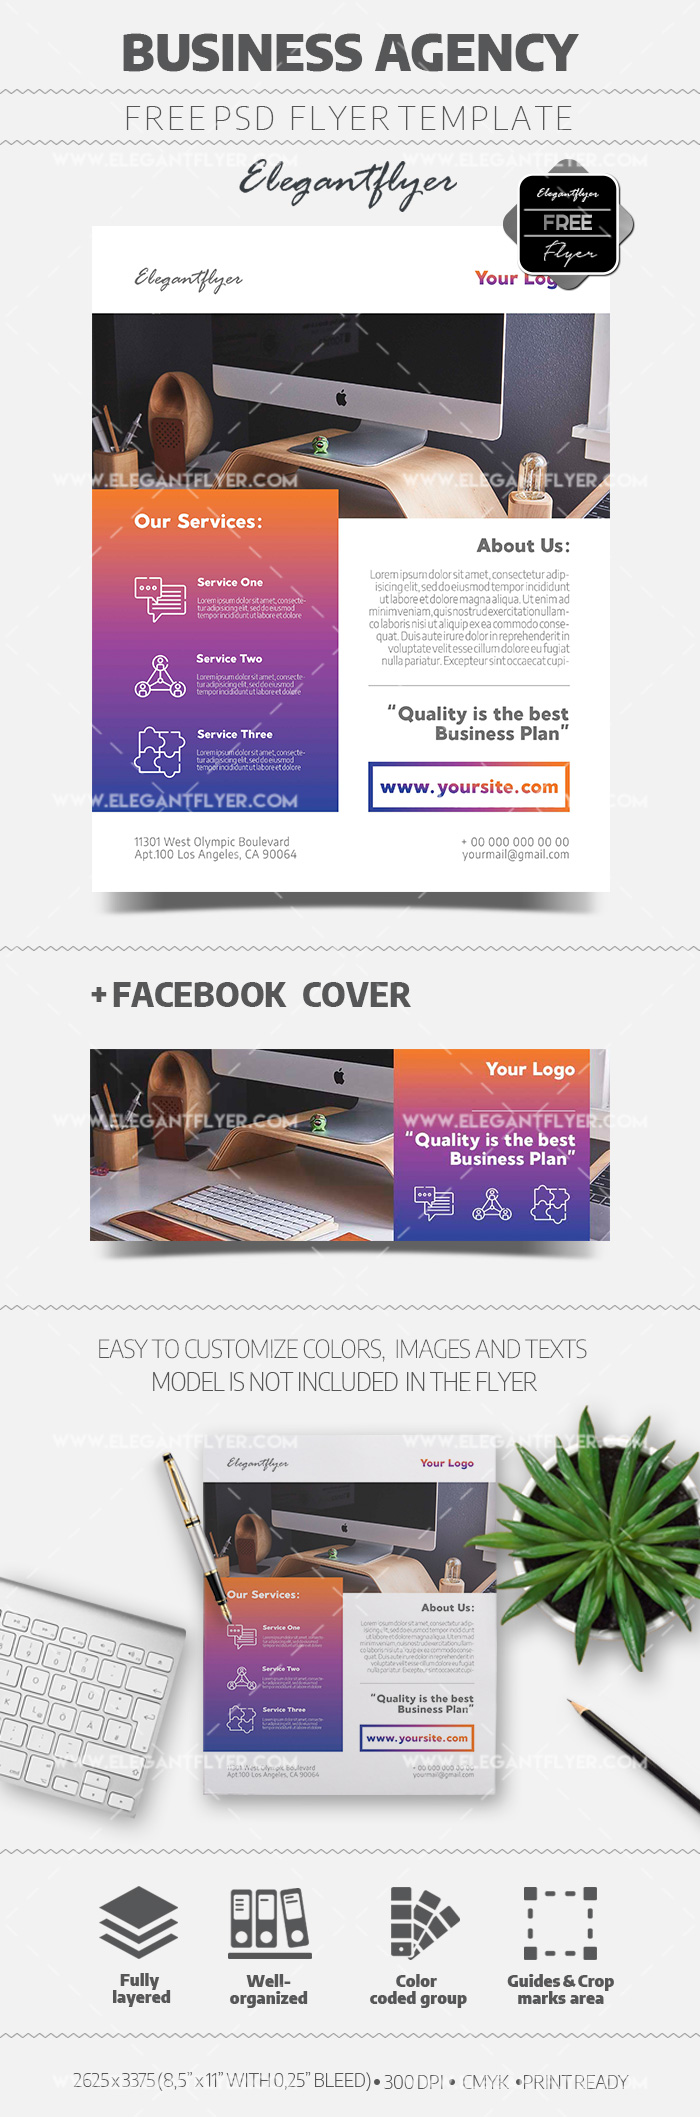 Business Agency – Free Flyer PSD Template